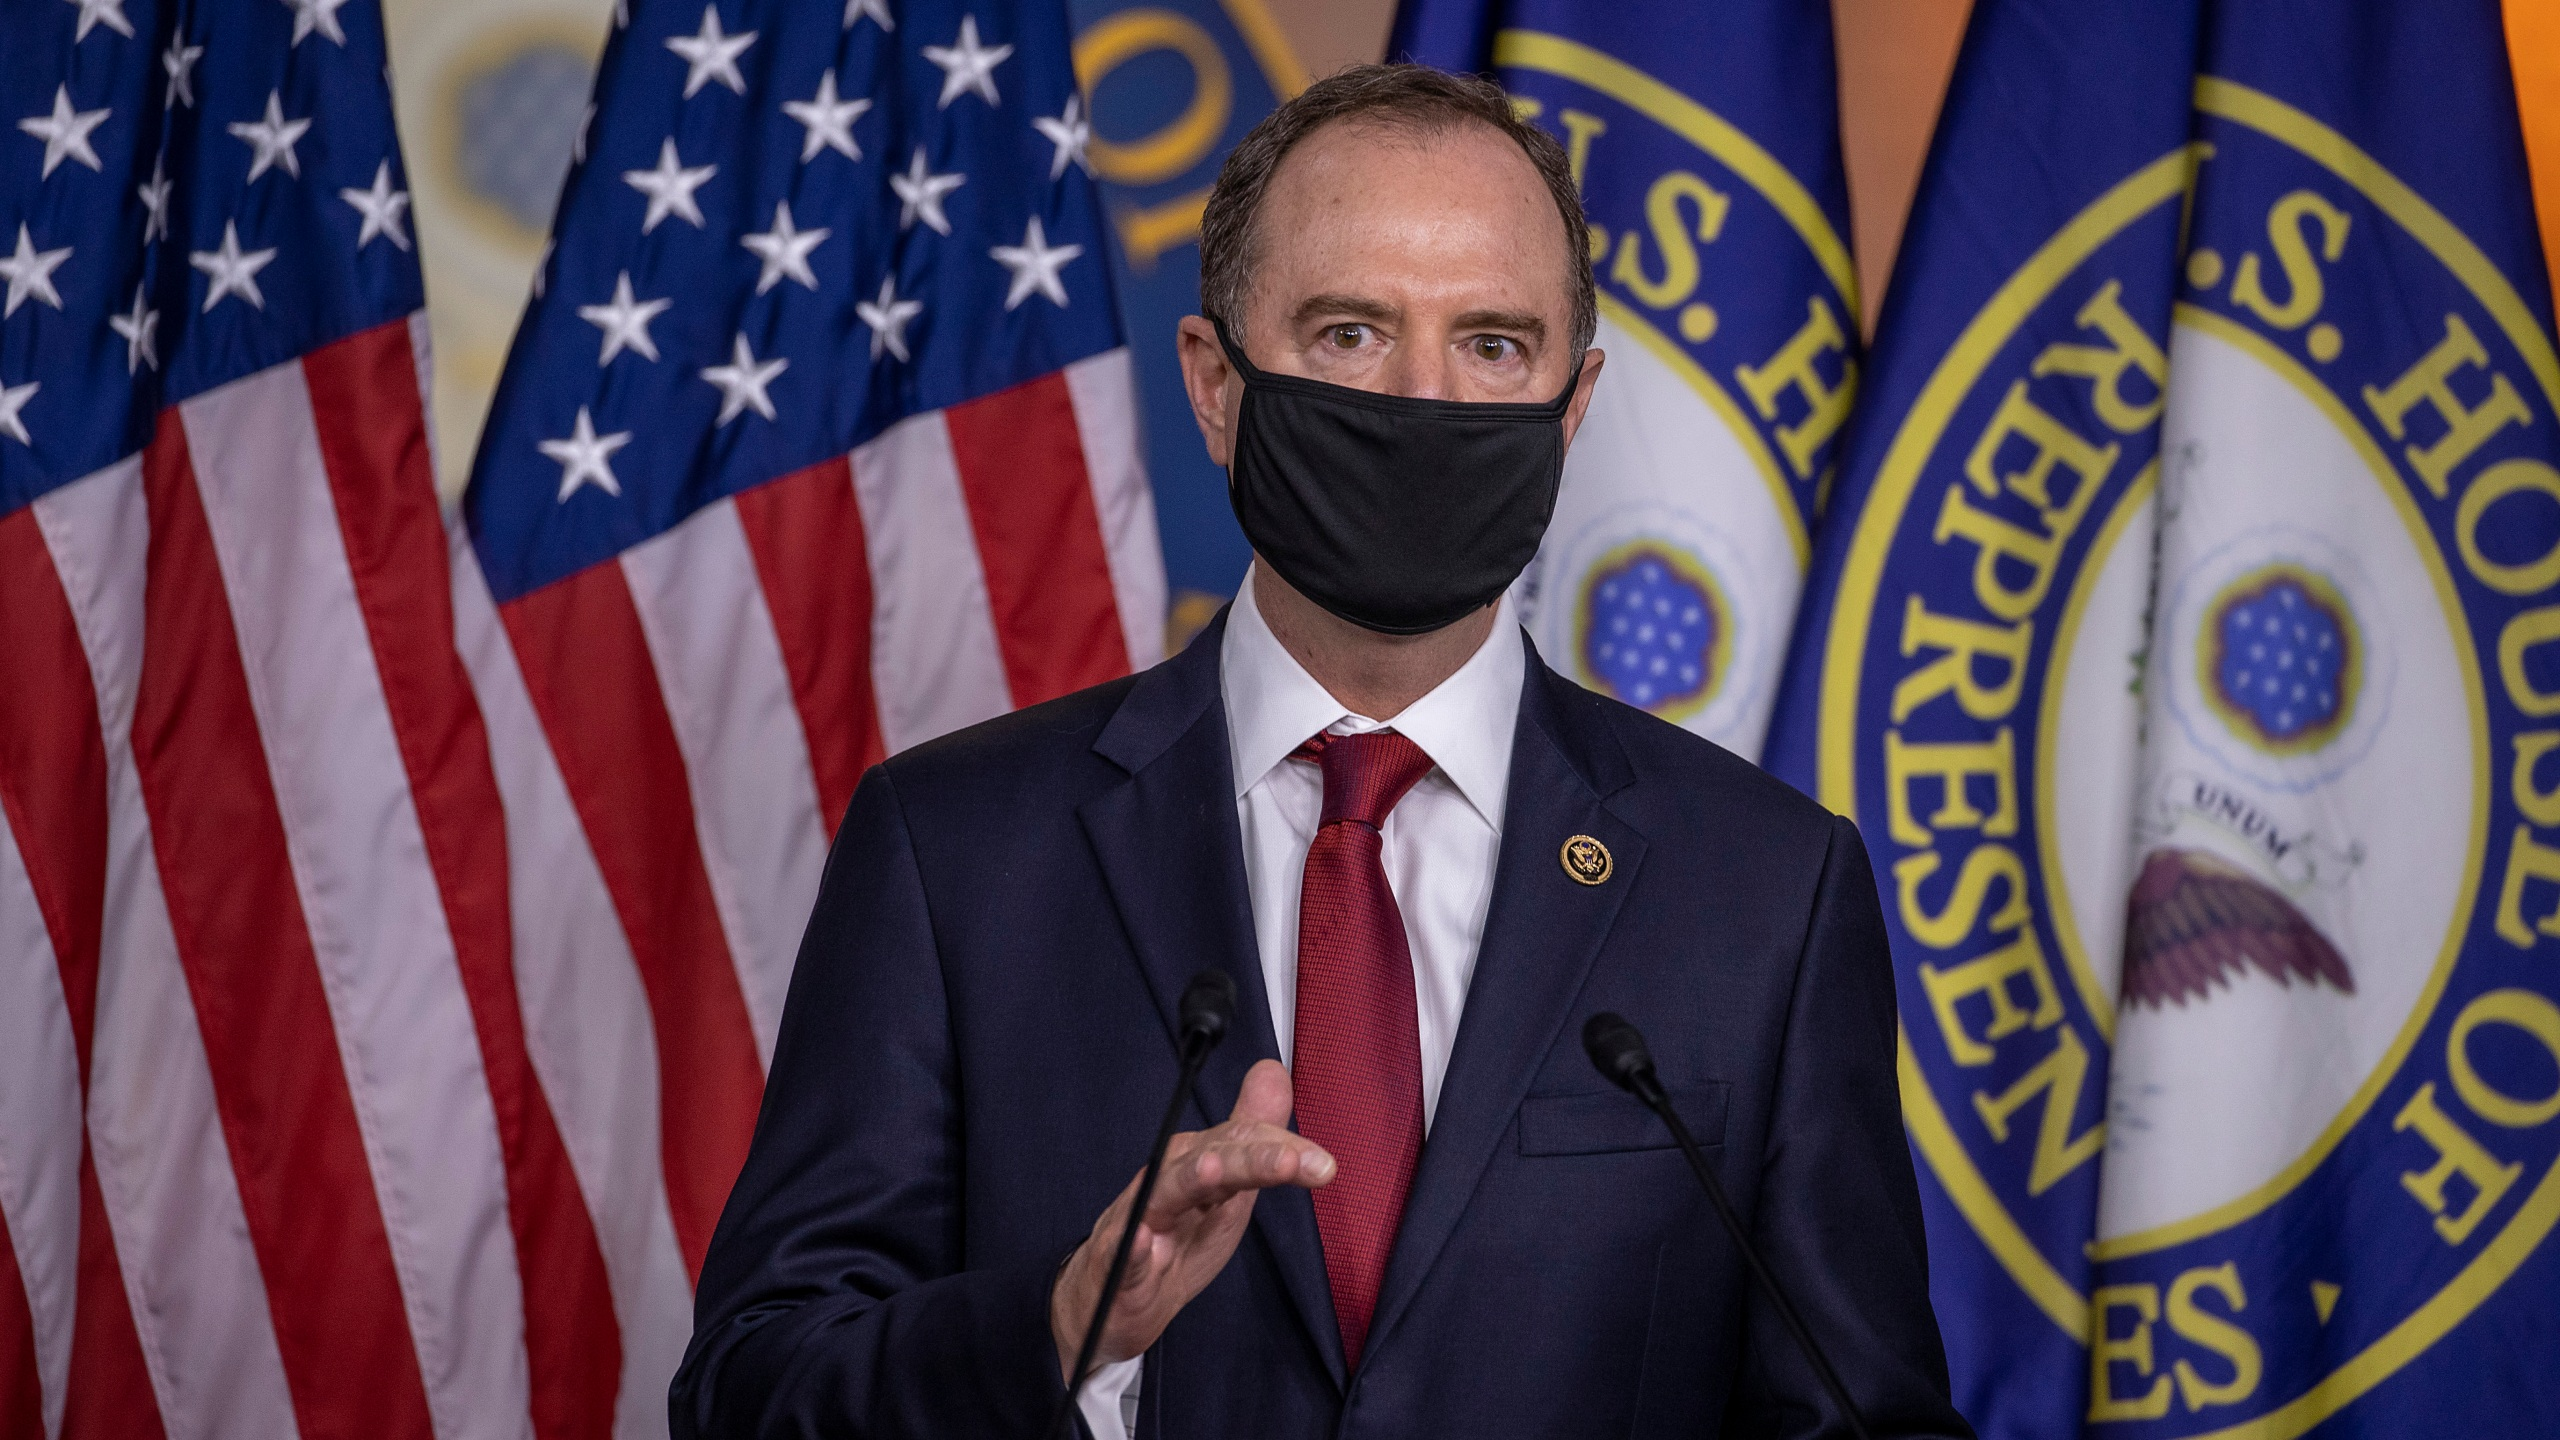 Rep. Adam Schiff (D-CA) speaks at a press conference on Capitol Hill on June 30, 2020. (Tasos Katopodis/Getty Images)